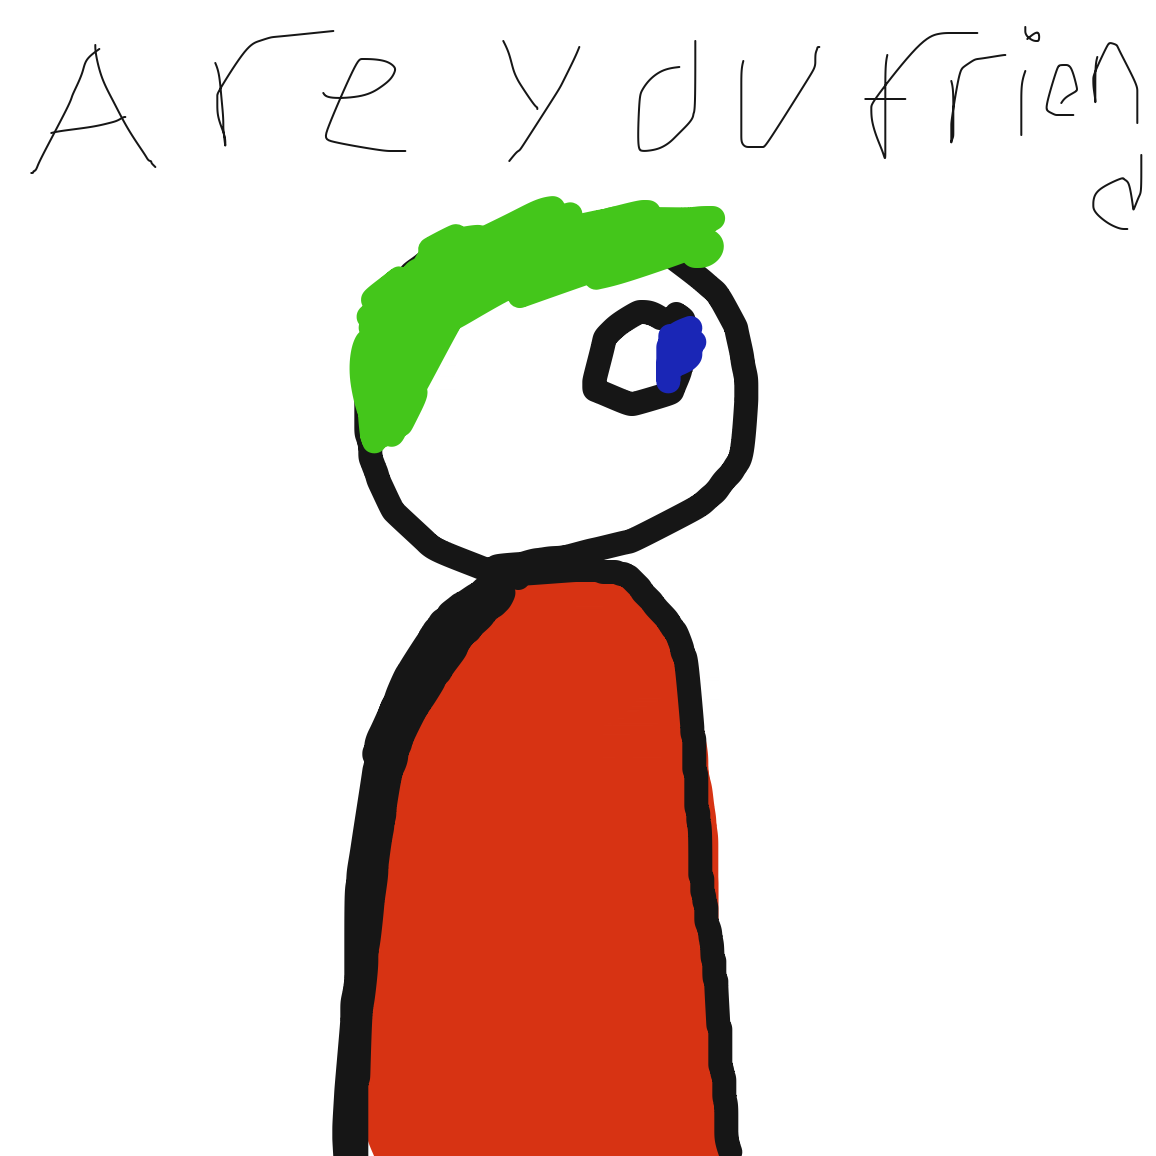 Drawing in Friend? by Nonexistent